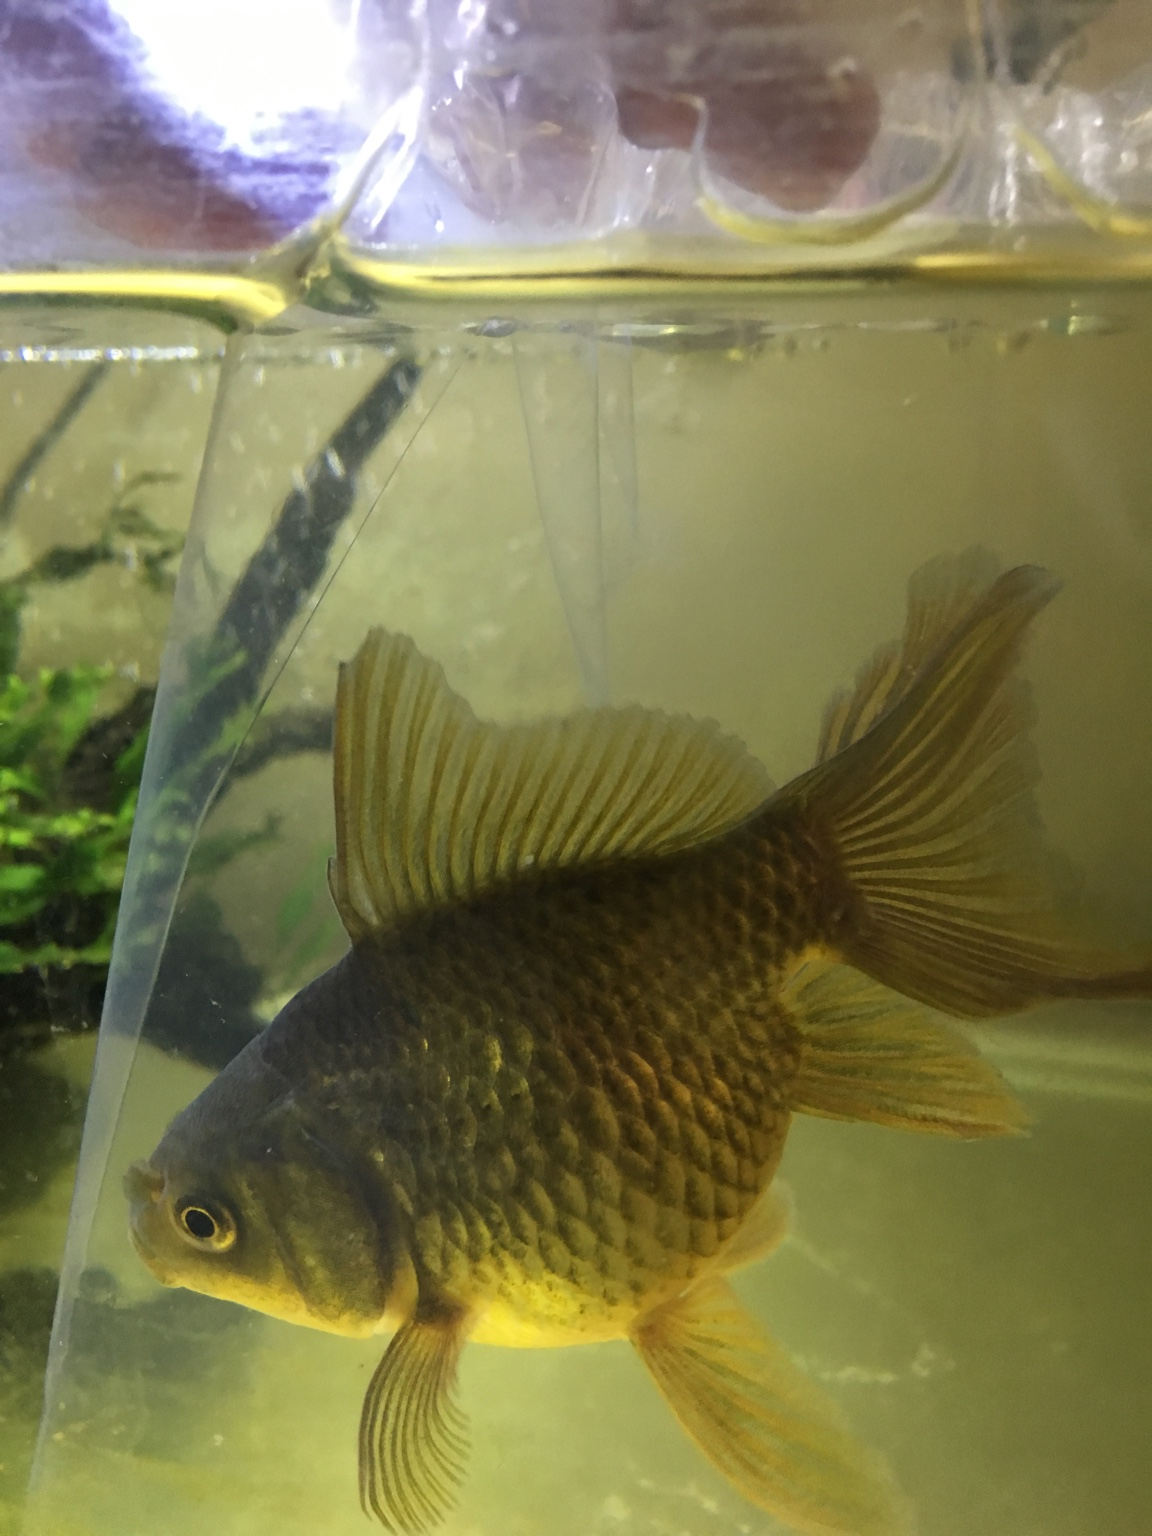 Fish aquarium price in bangalore -  Img